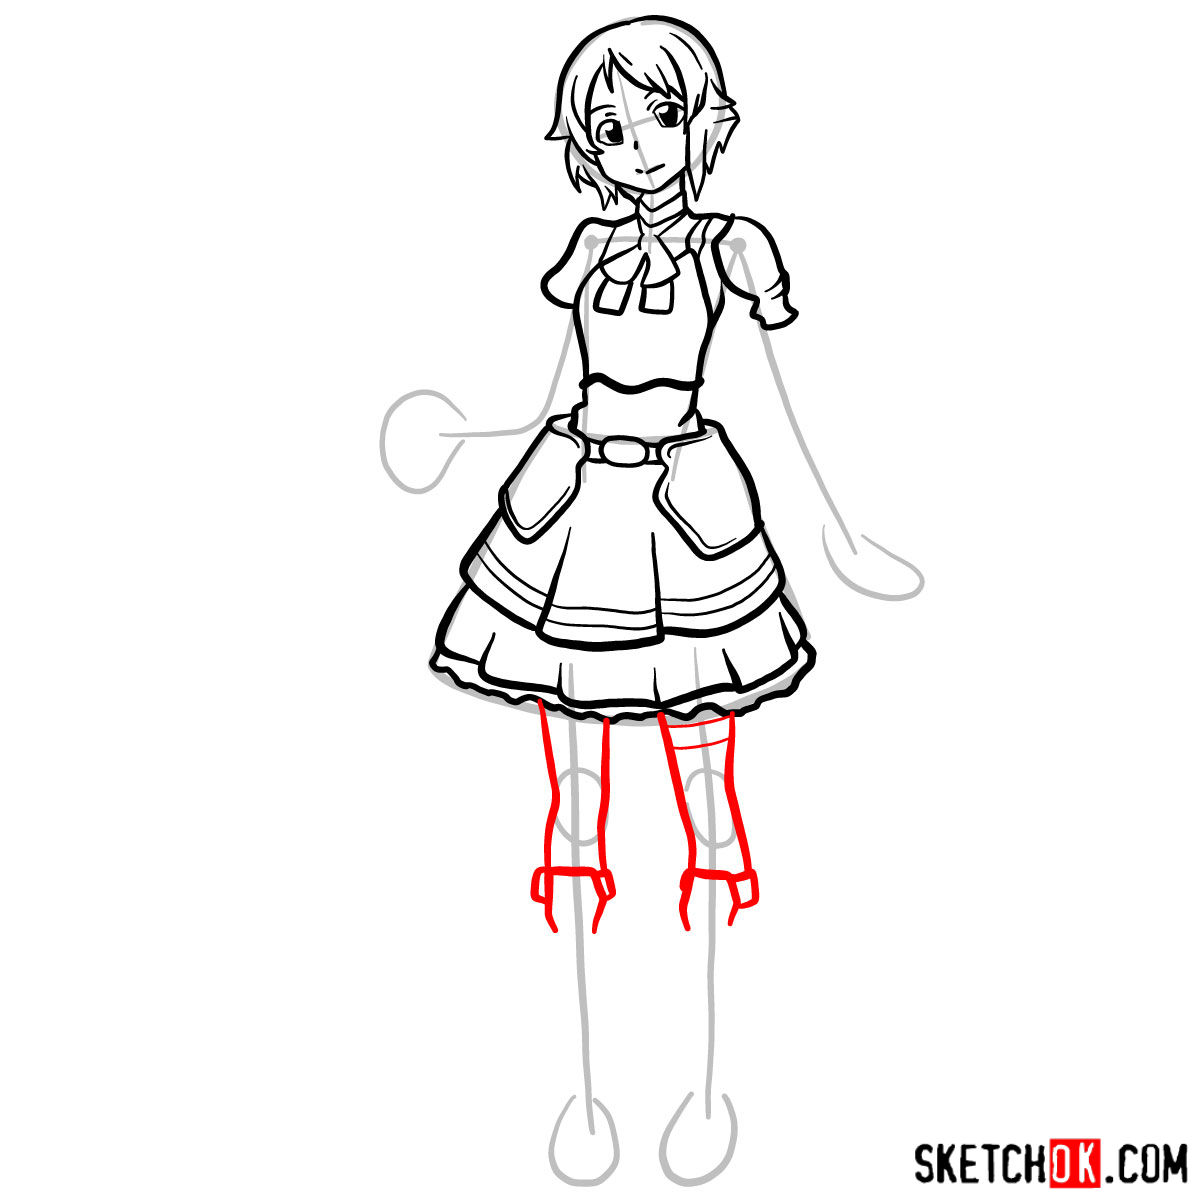 How to draw Lisbeth from Sword Art Online - step 11